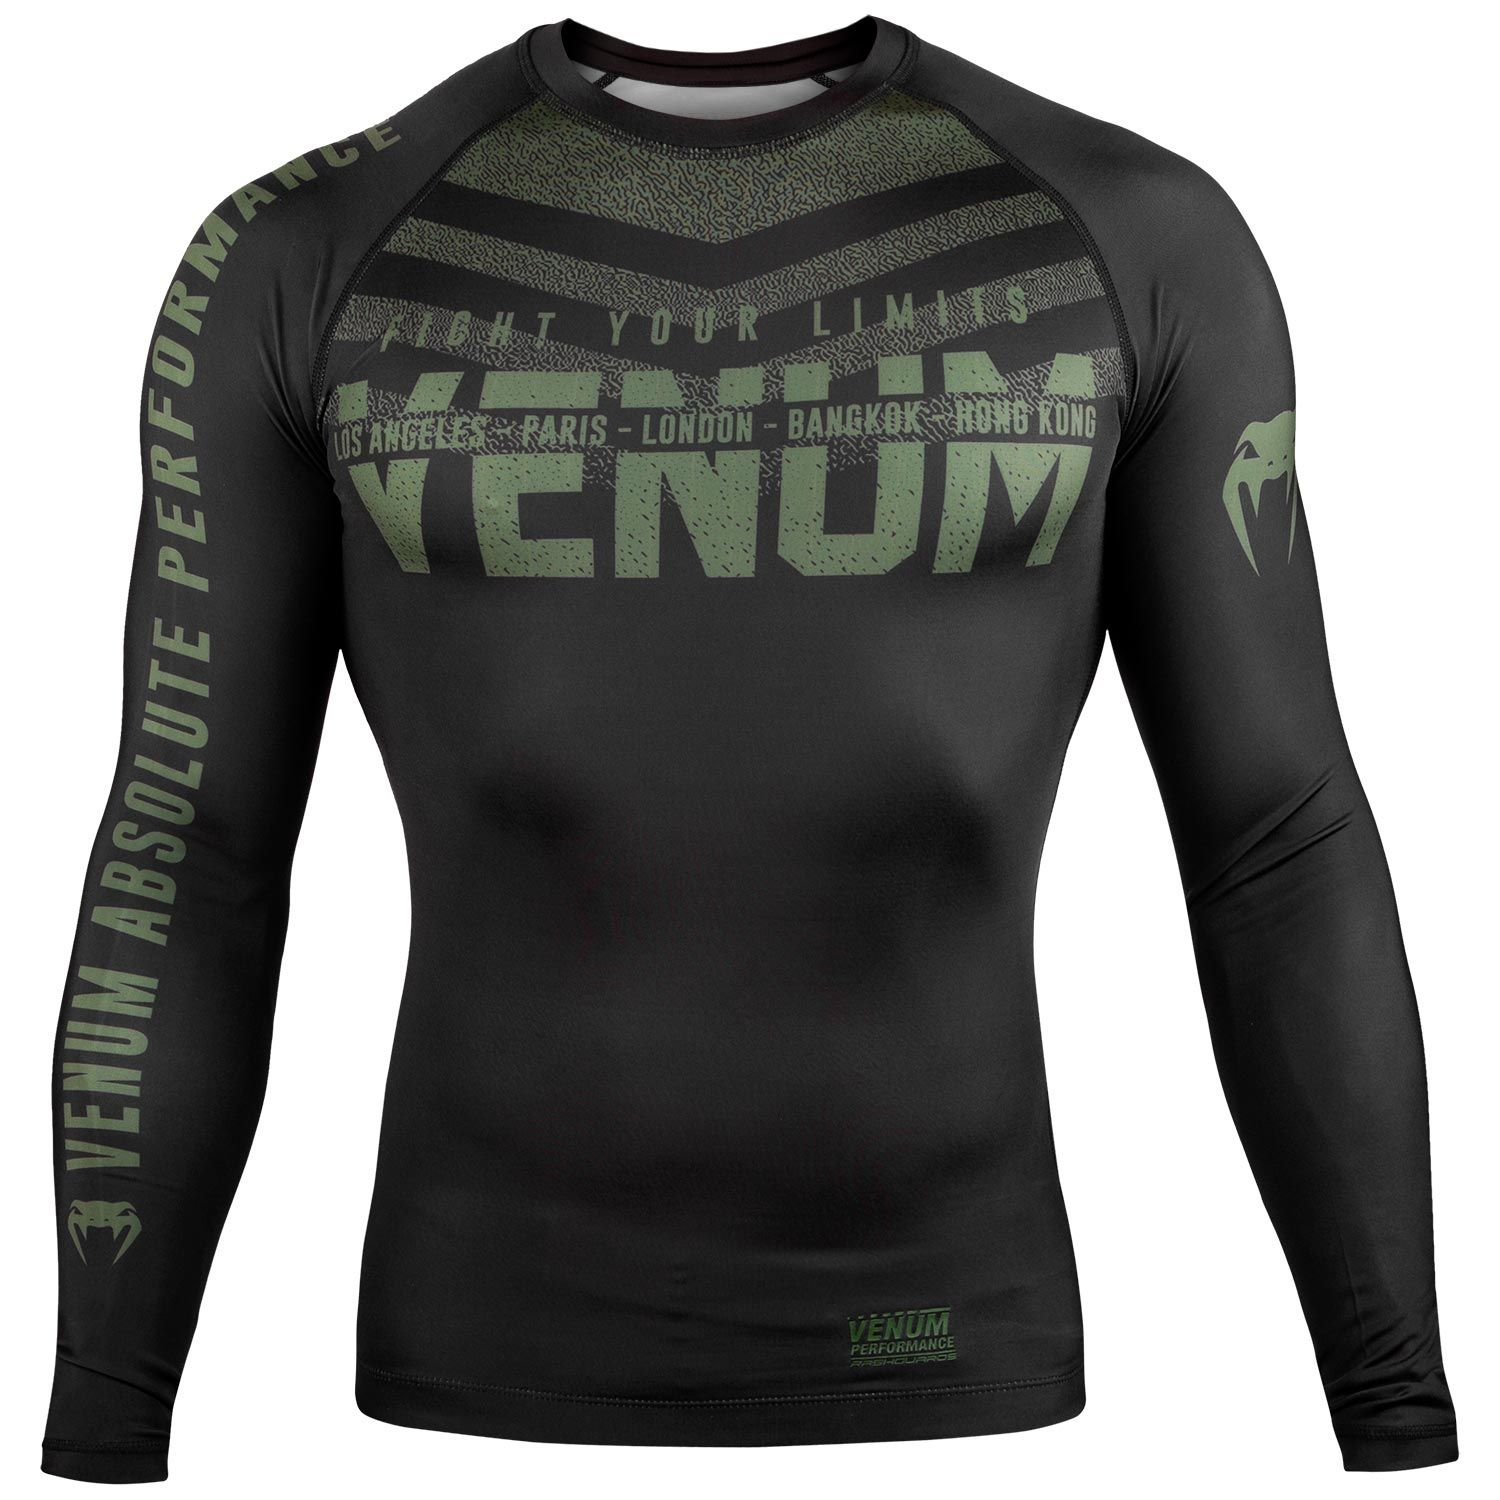 Venum Signature Rashguard - Long Sleeves - Black/Khaki - Exclusive